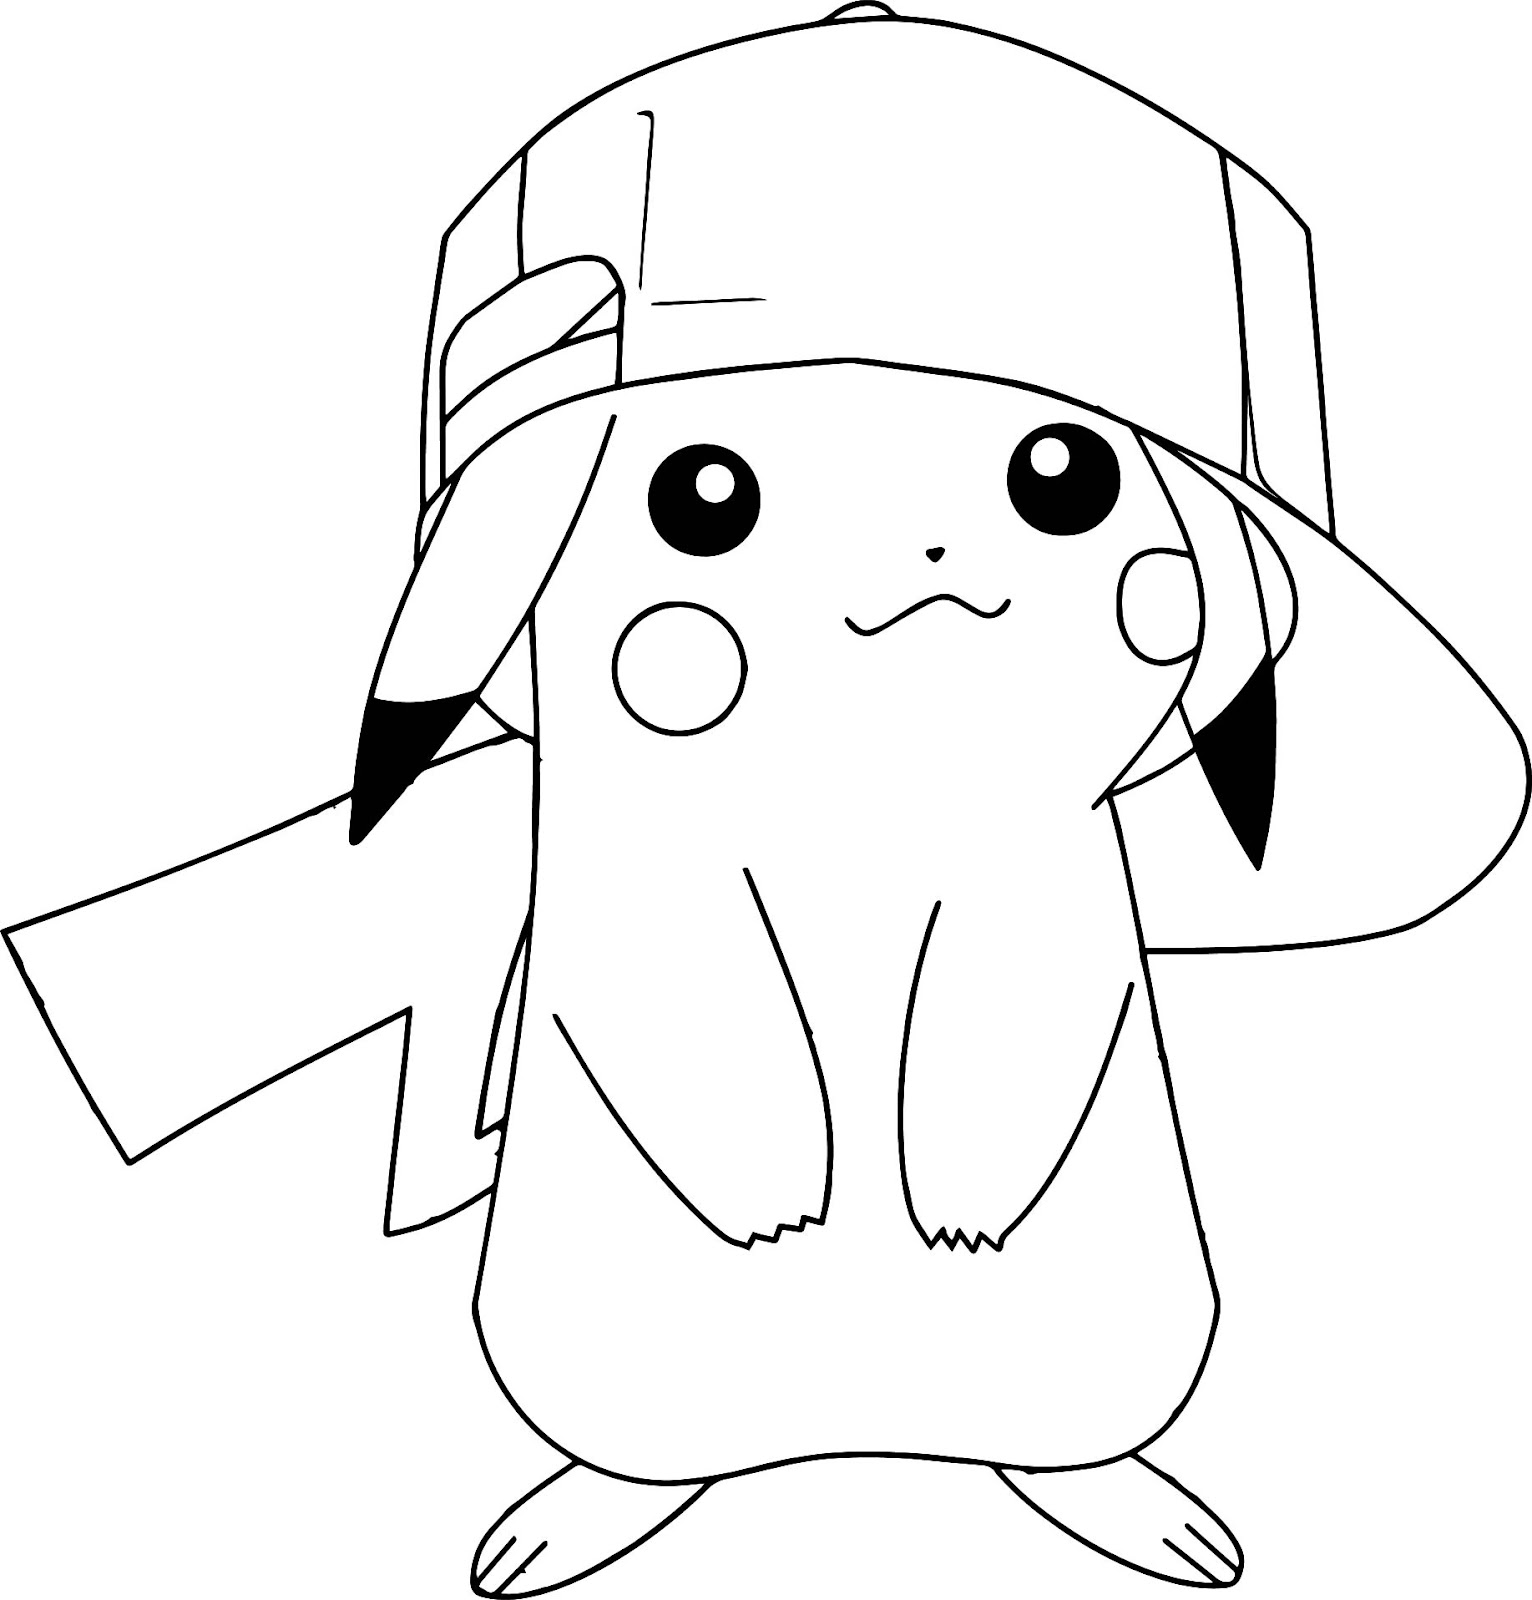 Pokemon coloring pages xerneas - Pokemon Coloring Pages Pikachu Wearing Hat Coloringstar